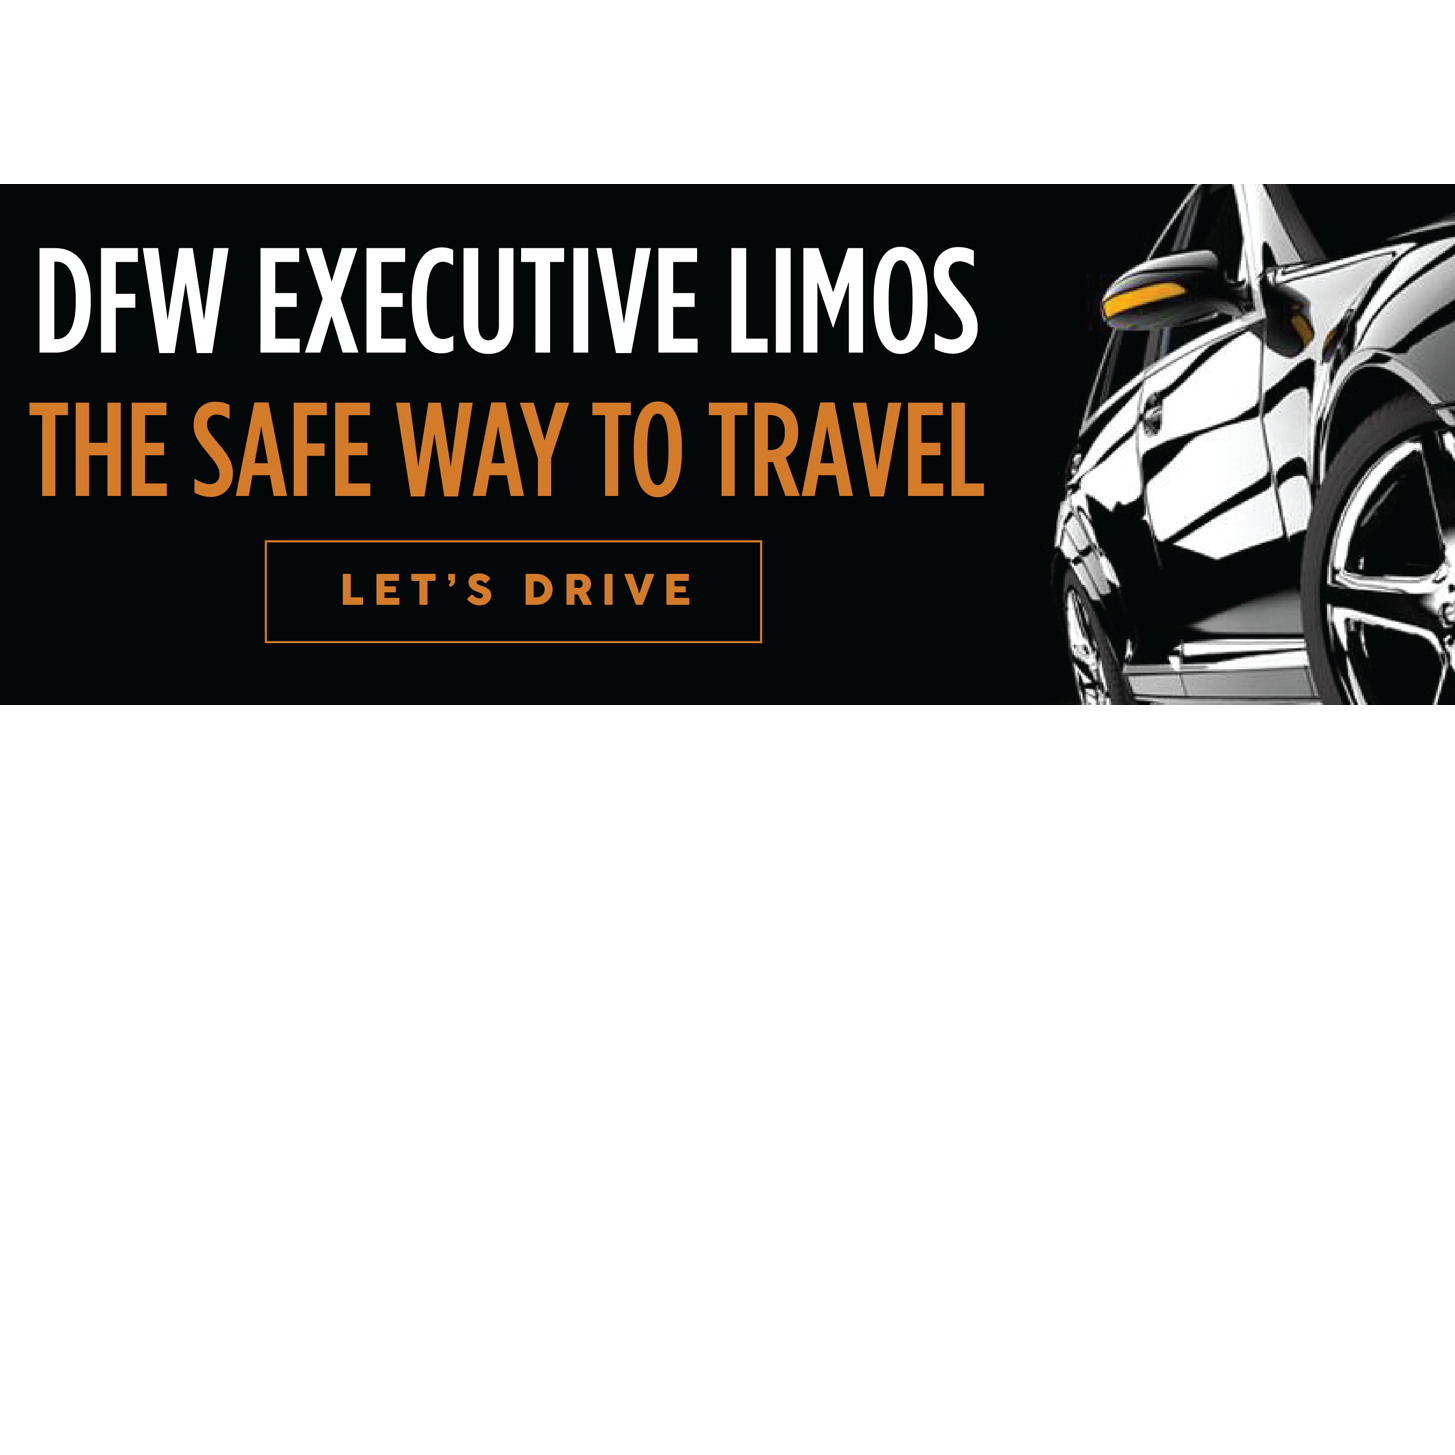 image of the DFW Executive Limos